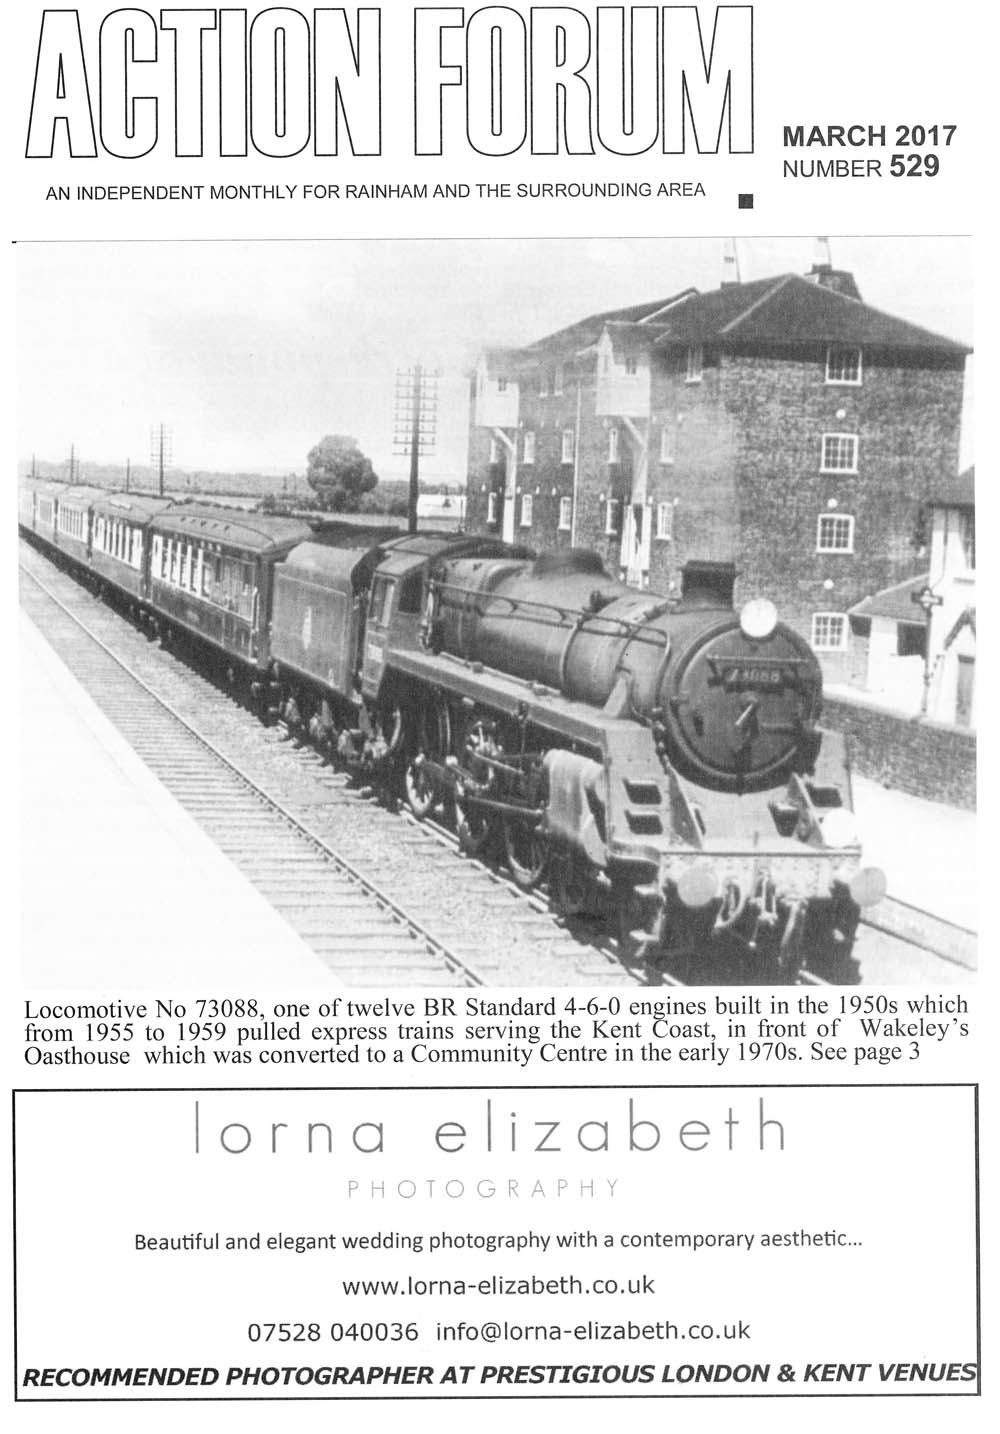 Cover photo of Loco No. 73088 pulling express trains serving Kent coast.